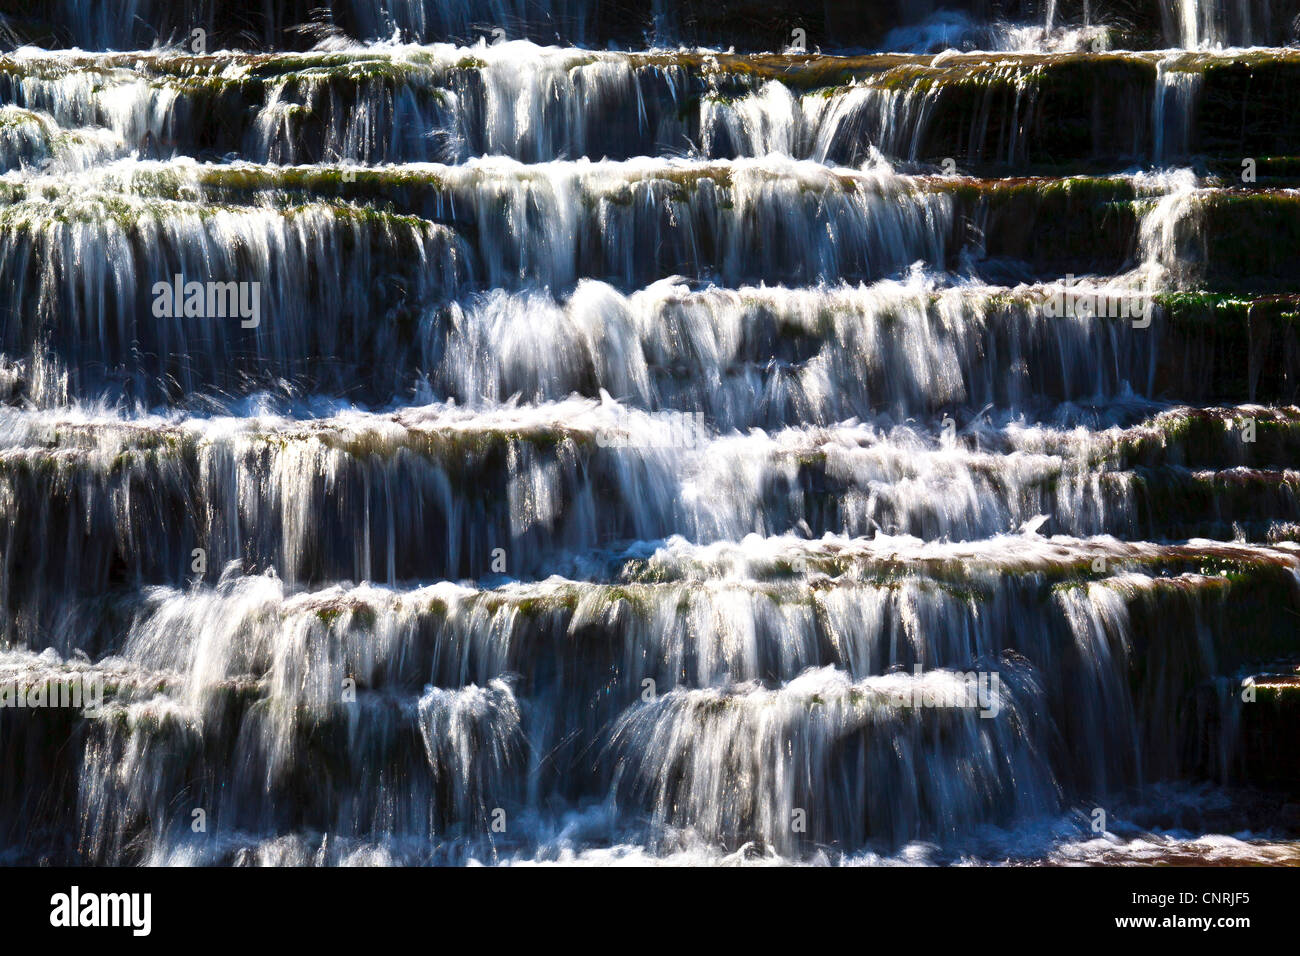 Waterfall close up Photo Stock